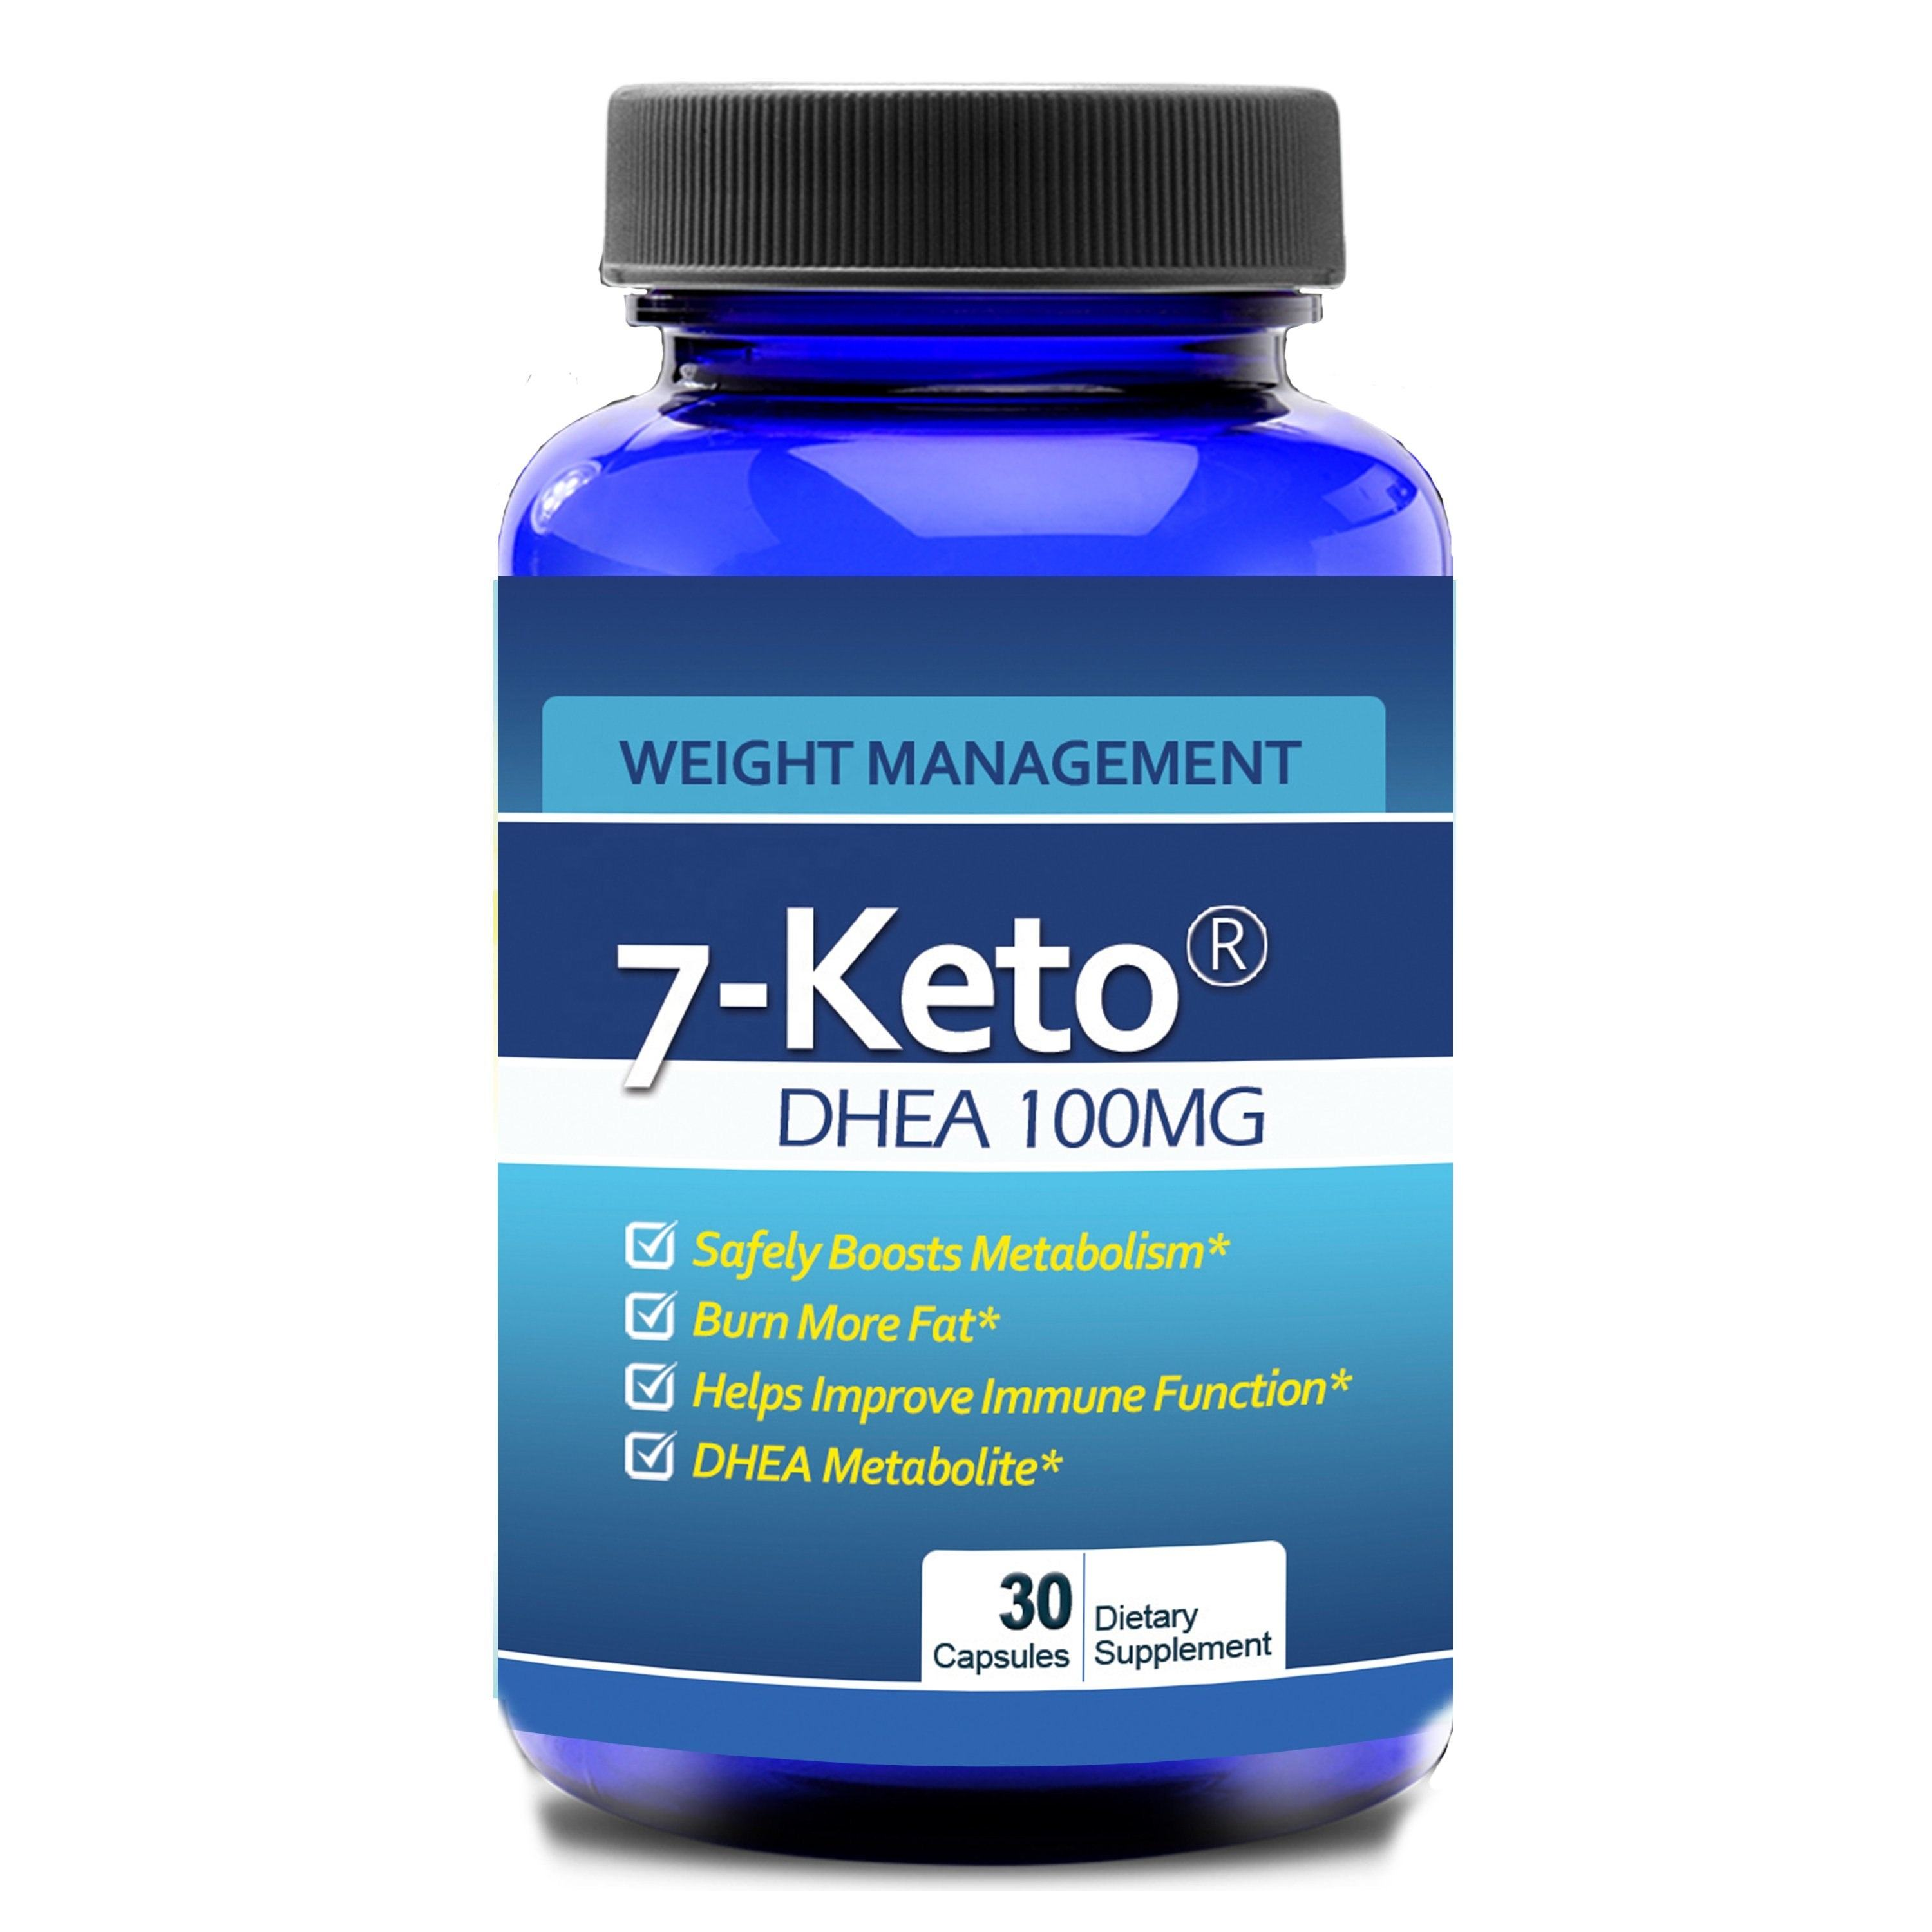 Highly Recognized 7 Keto DHEA Full Potency 100mg 30 Capsules Weight Loss and Burn More Fat